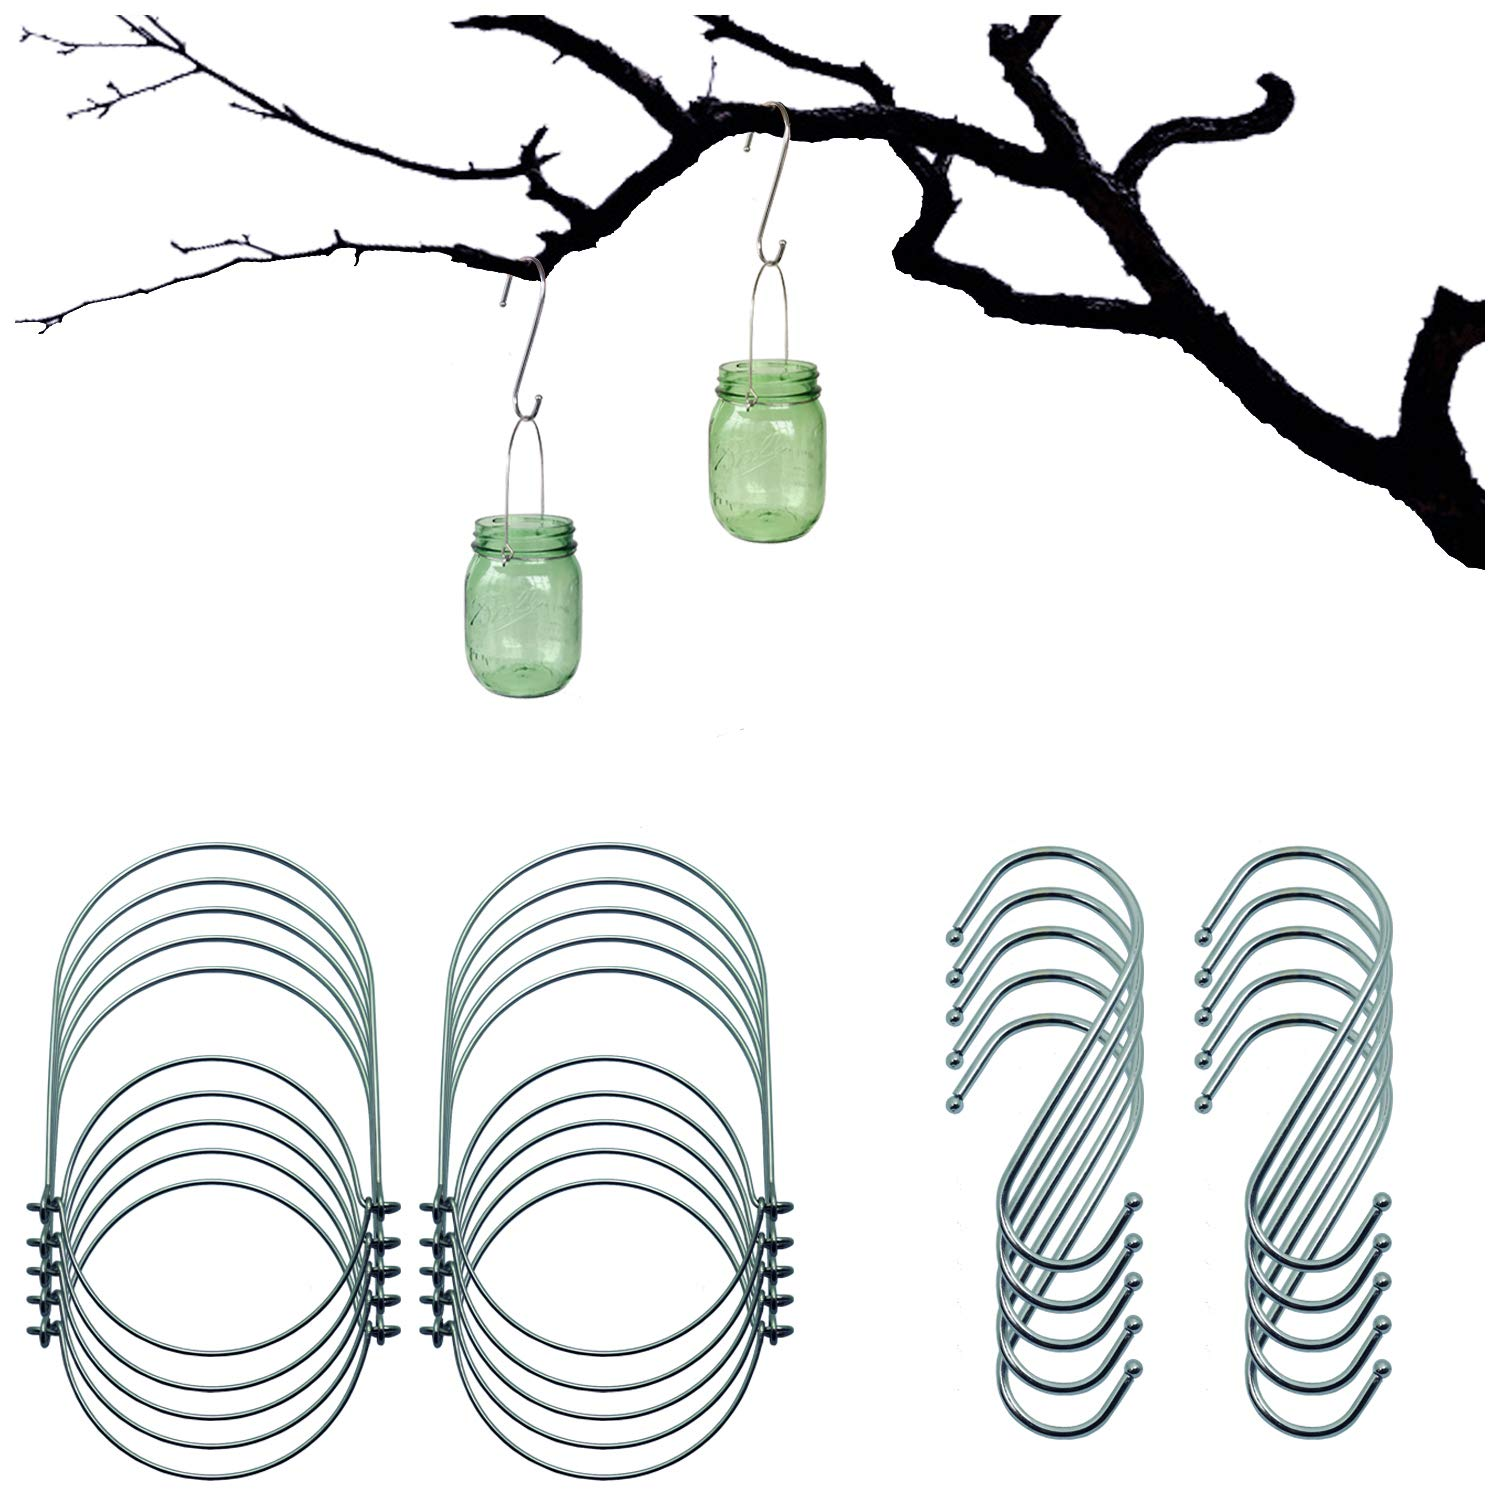 Mason Jar Wire Hangers (Handle-Ease),10 Pack Stainless Steel Handle Hangers and S Hooks for Hanging,Great for Regular Mouth Canning Jars,Solar Mason Jar Lights Lanterns (10Pack-Silver, Regular Mouth)